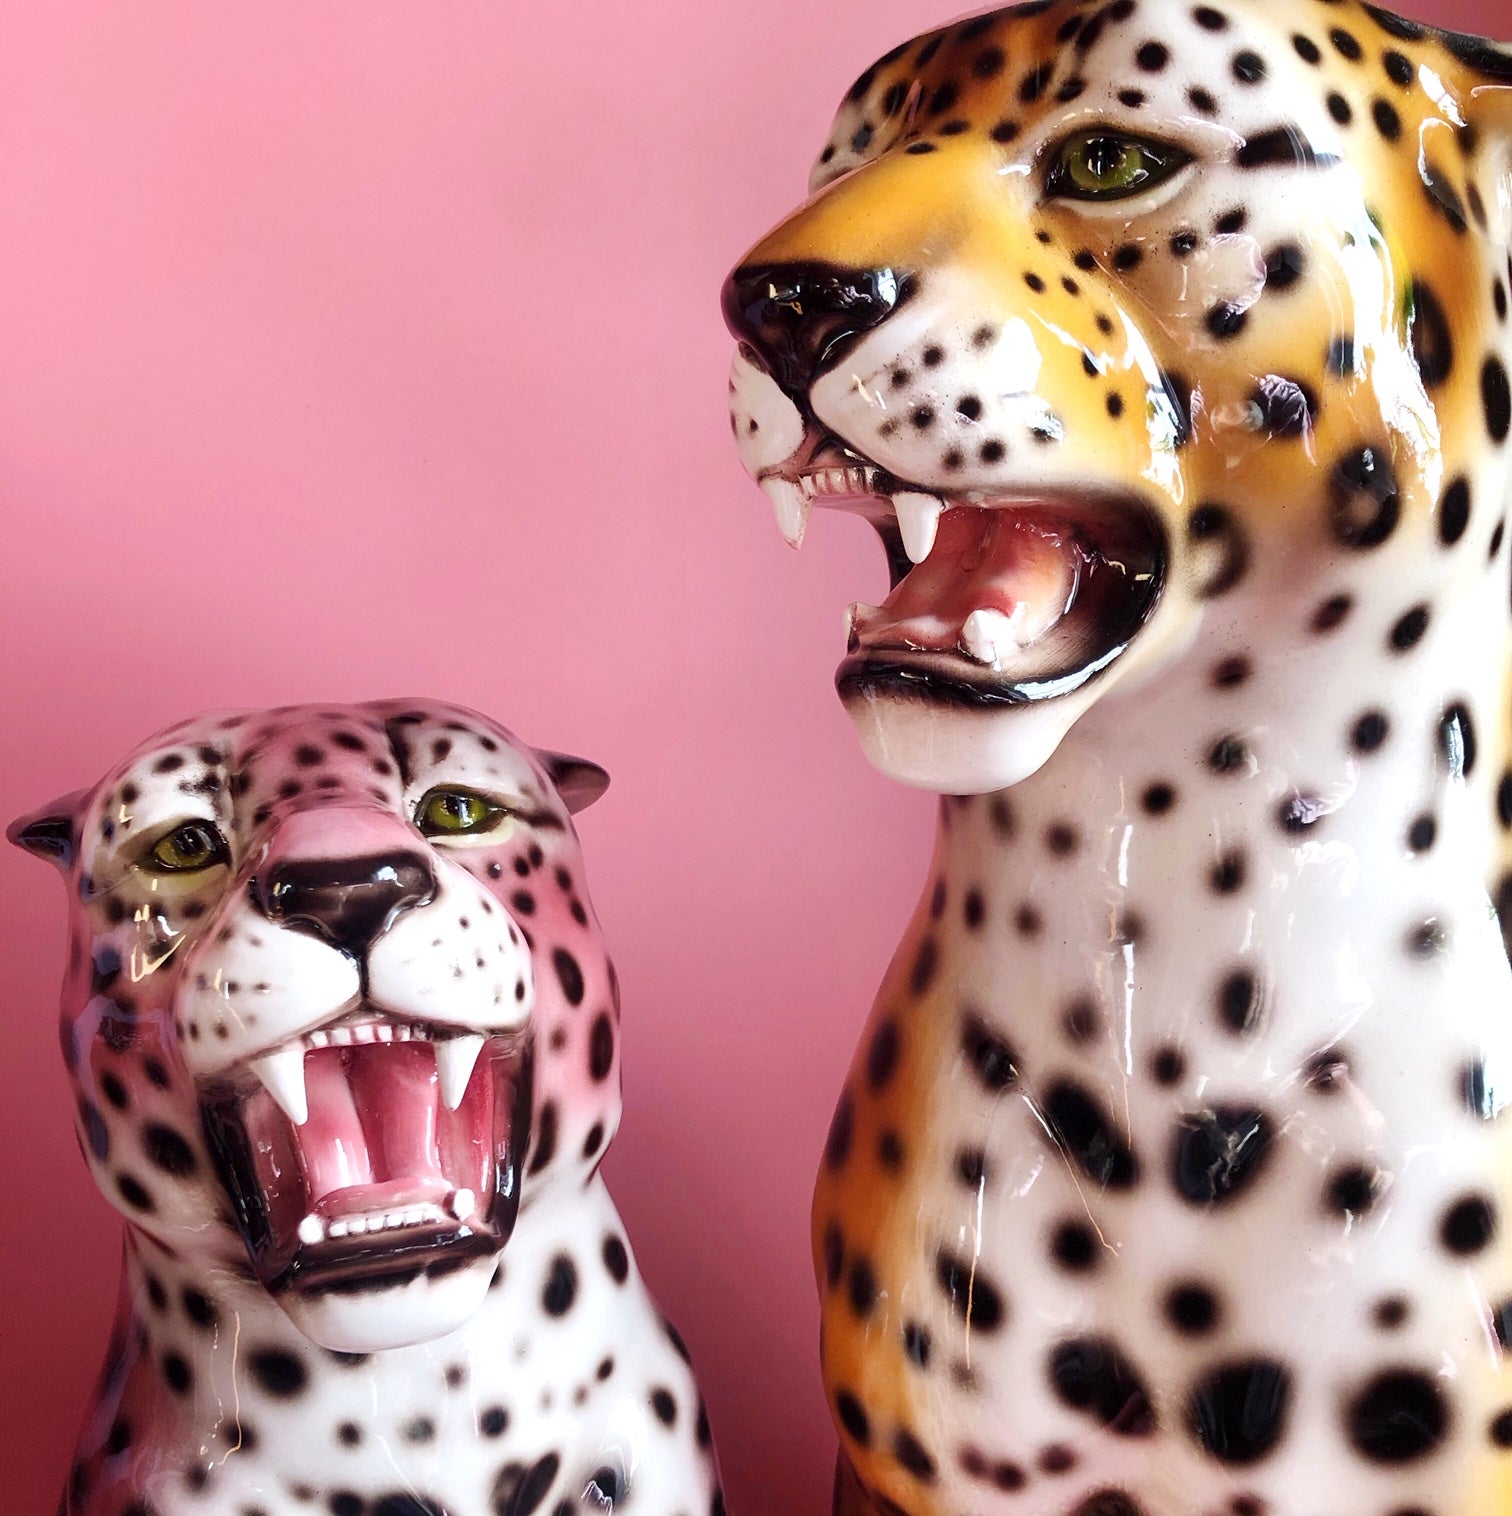 two ceramic leopards one pink, one orange against a pink background